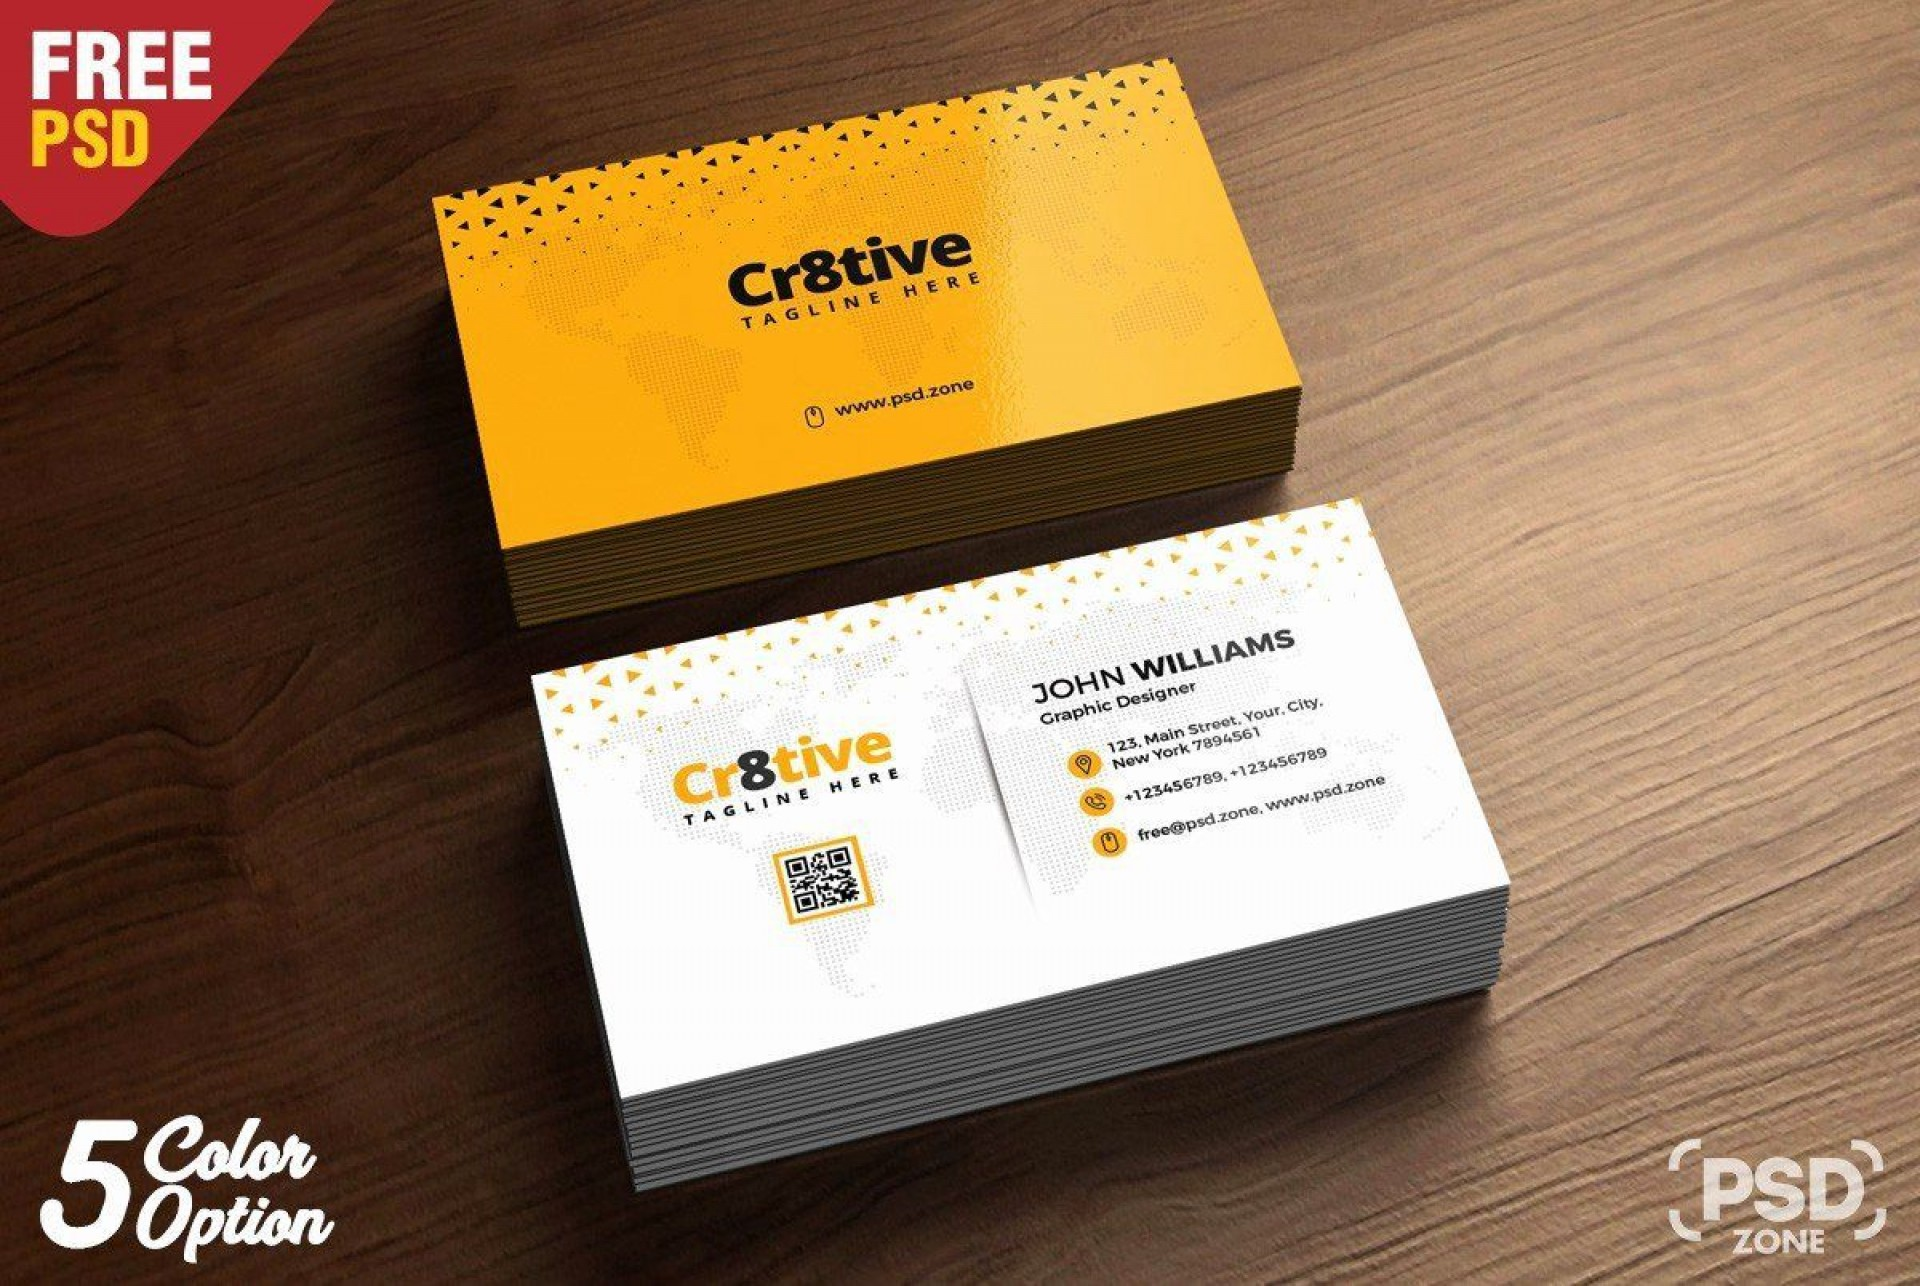 007 Best Simple Busines Card Design Template Free Photo  Minimalist Psd Visiting File Download1920